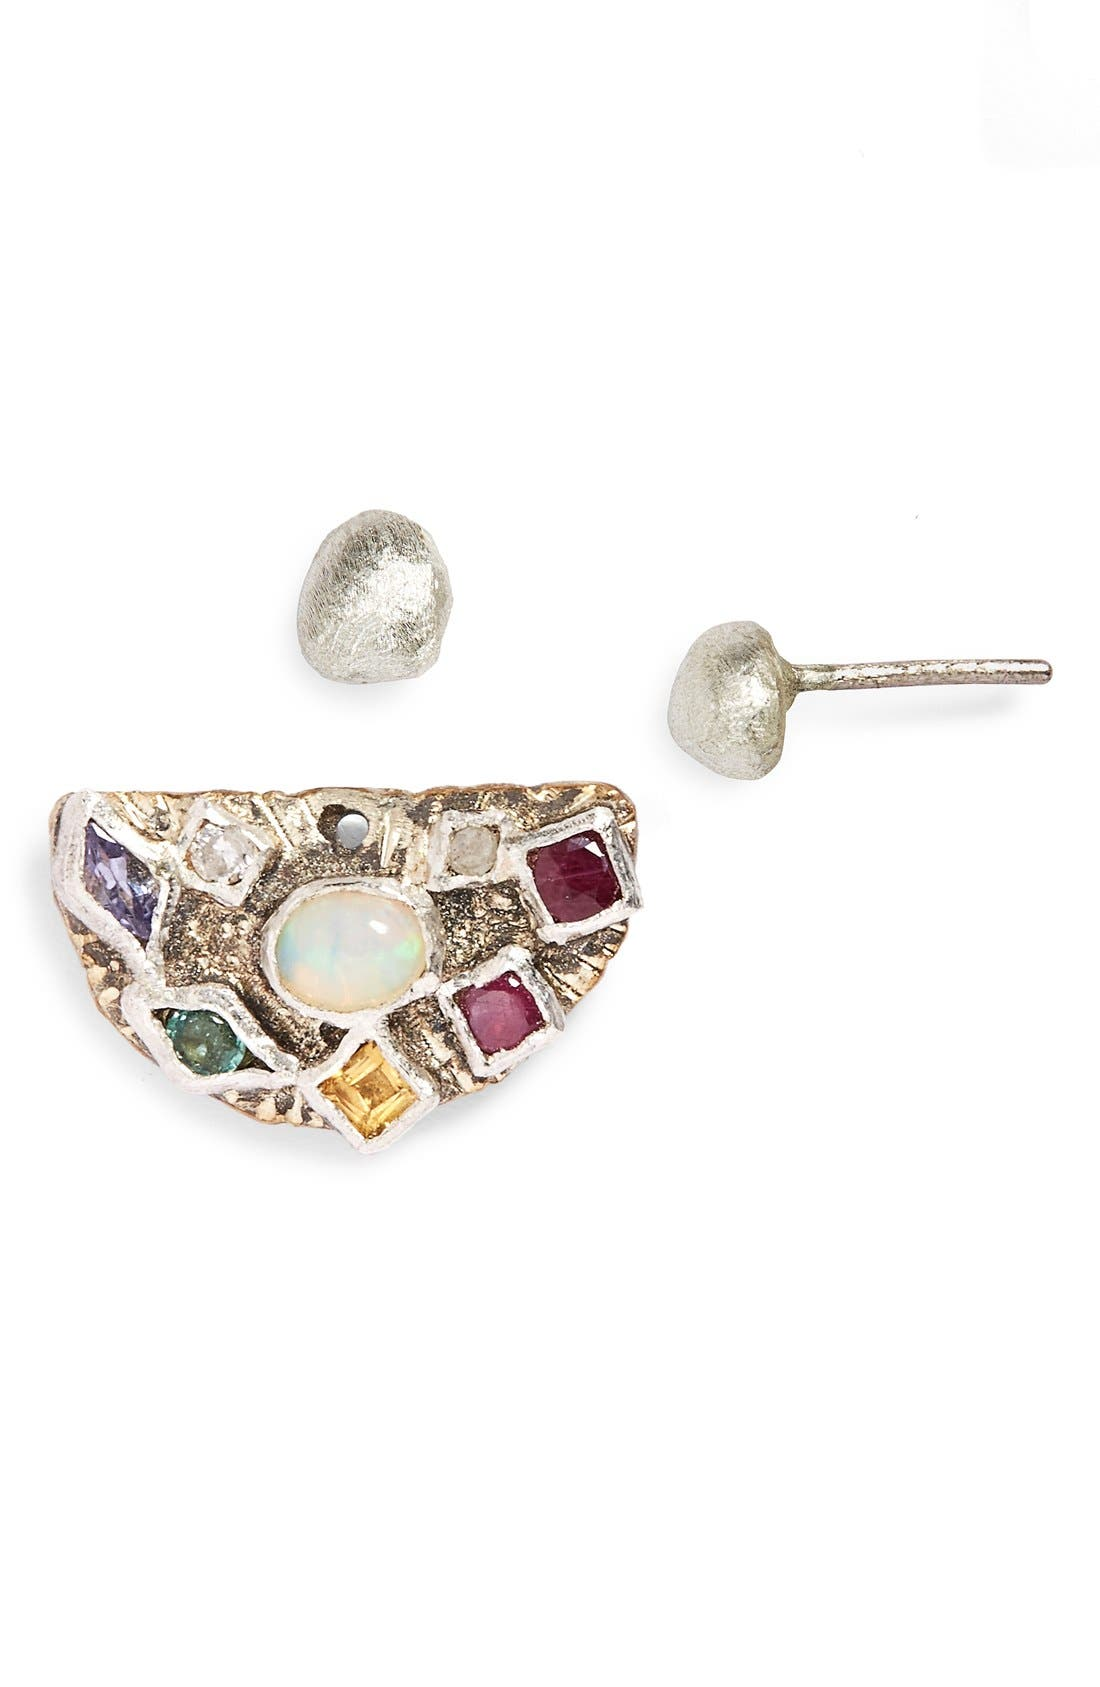 Alternate Image 1 Selected - Franny E Jewelry Multistone Ear Jacket with Sterling Silver Stud